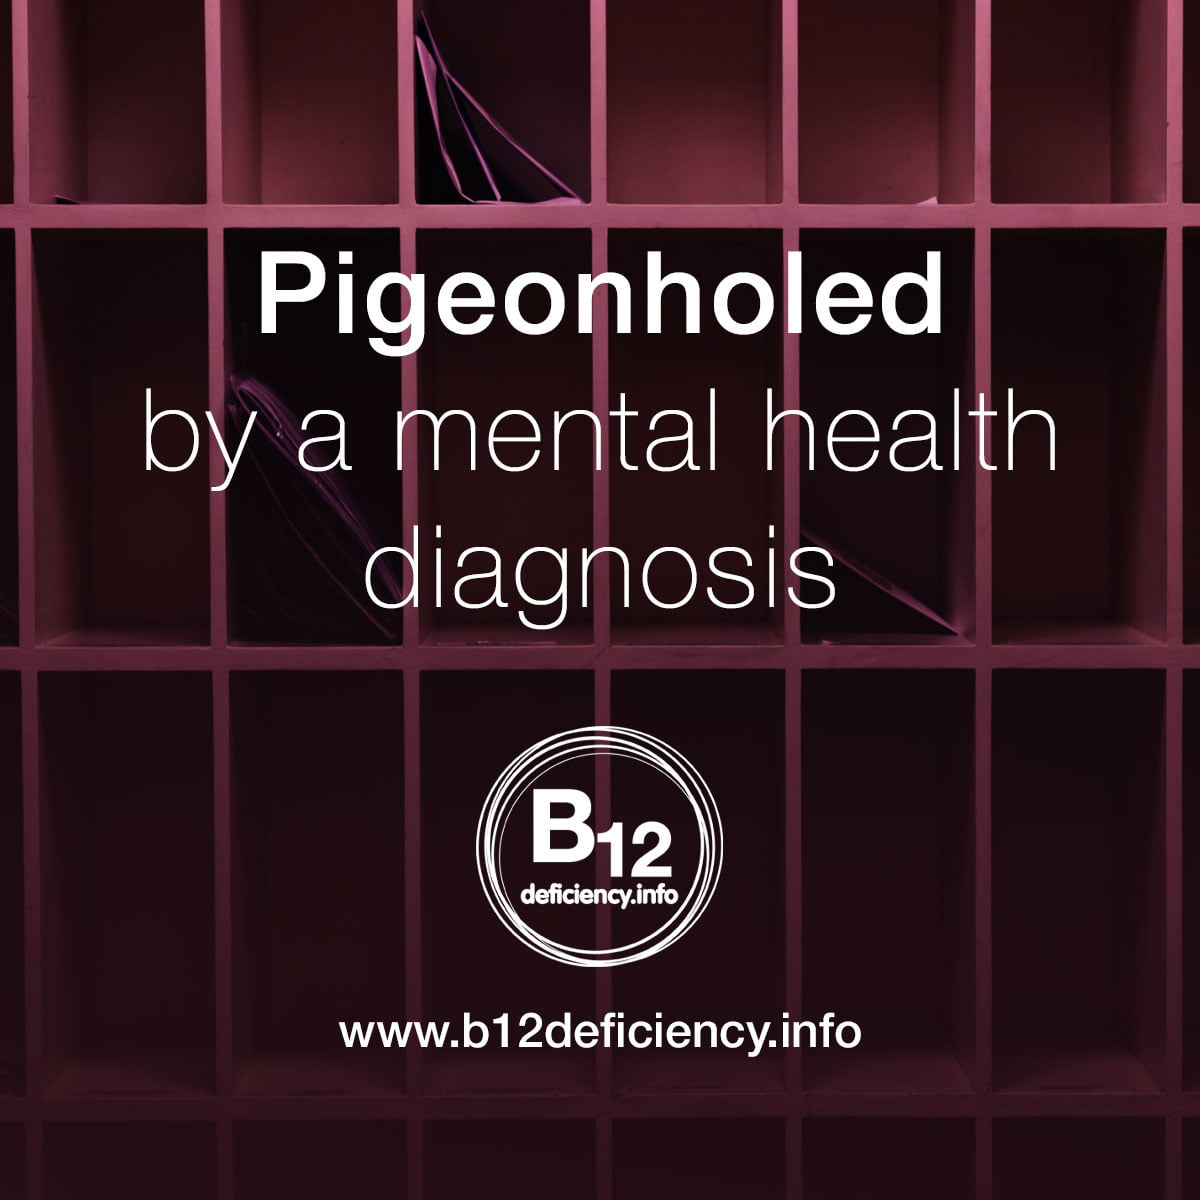 Pigeonholed by a mental health diagnosis